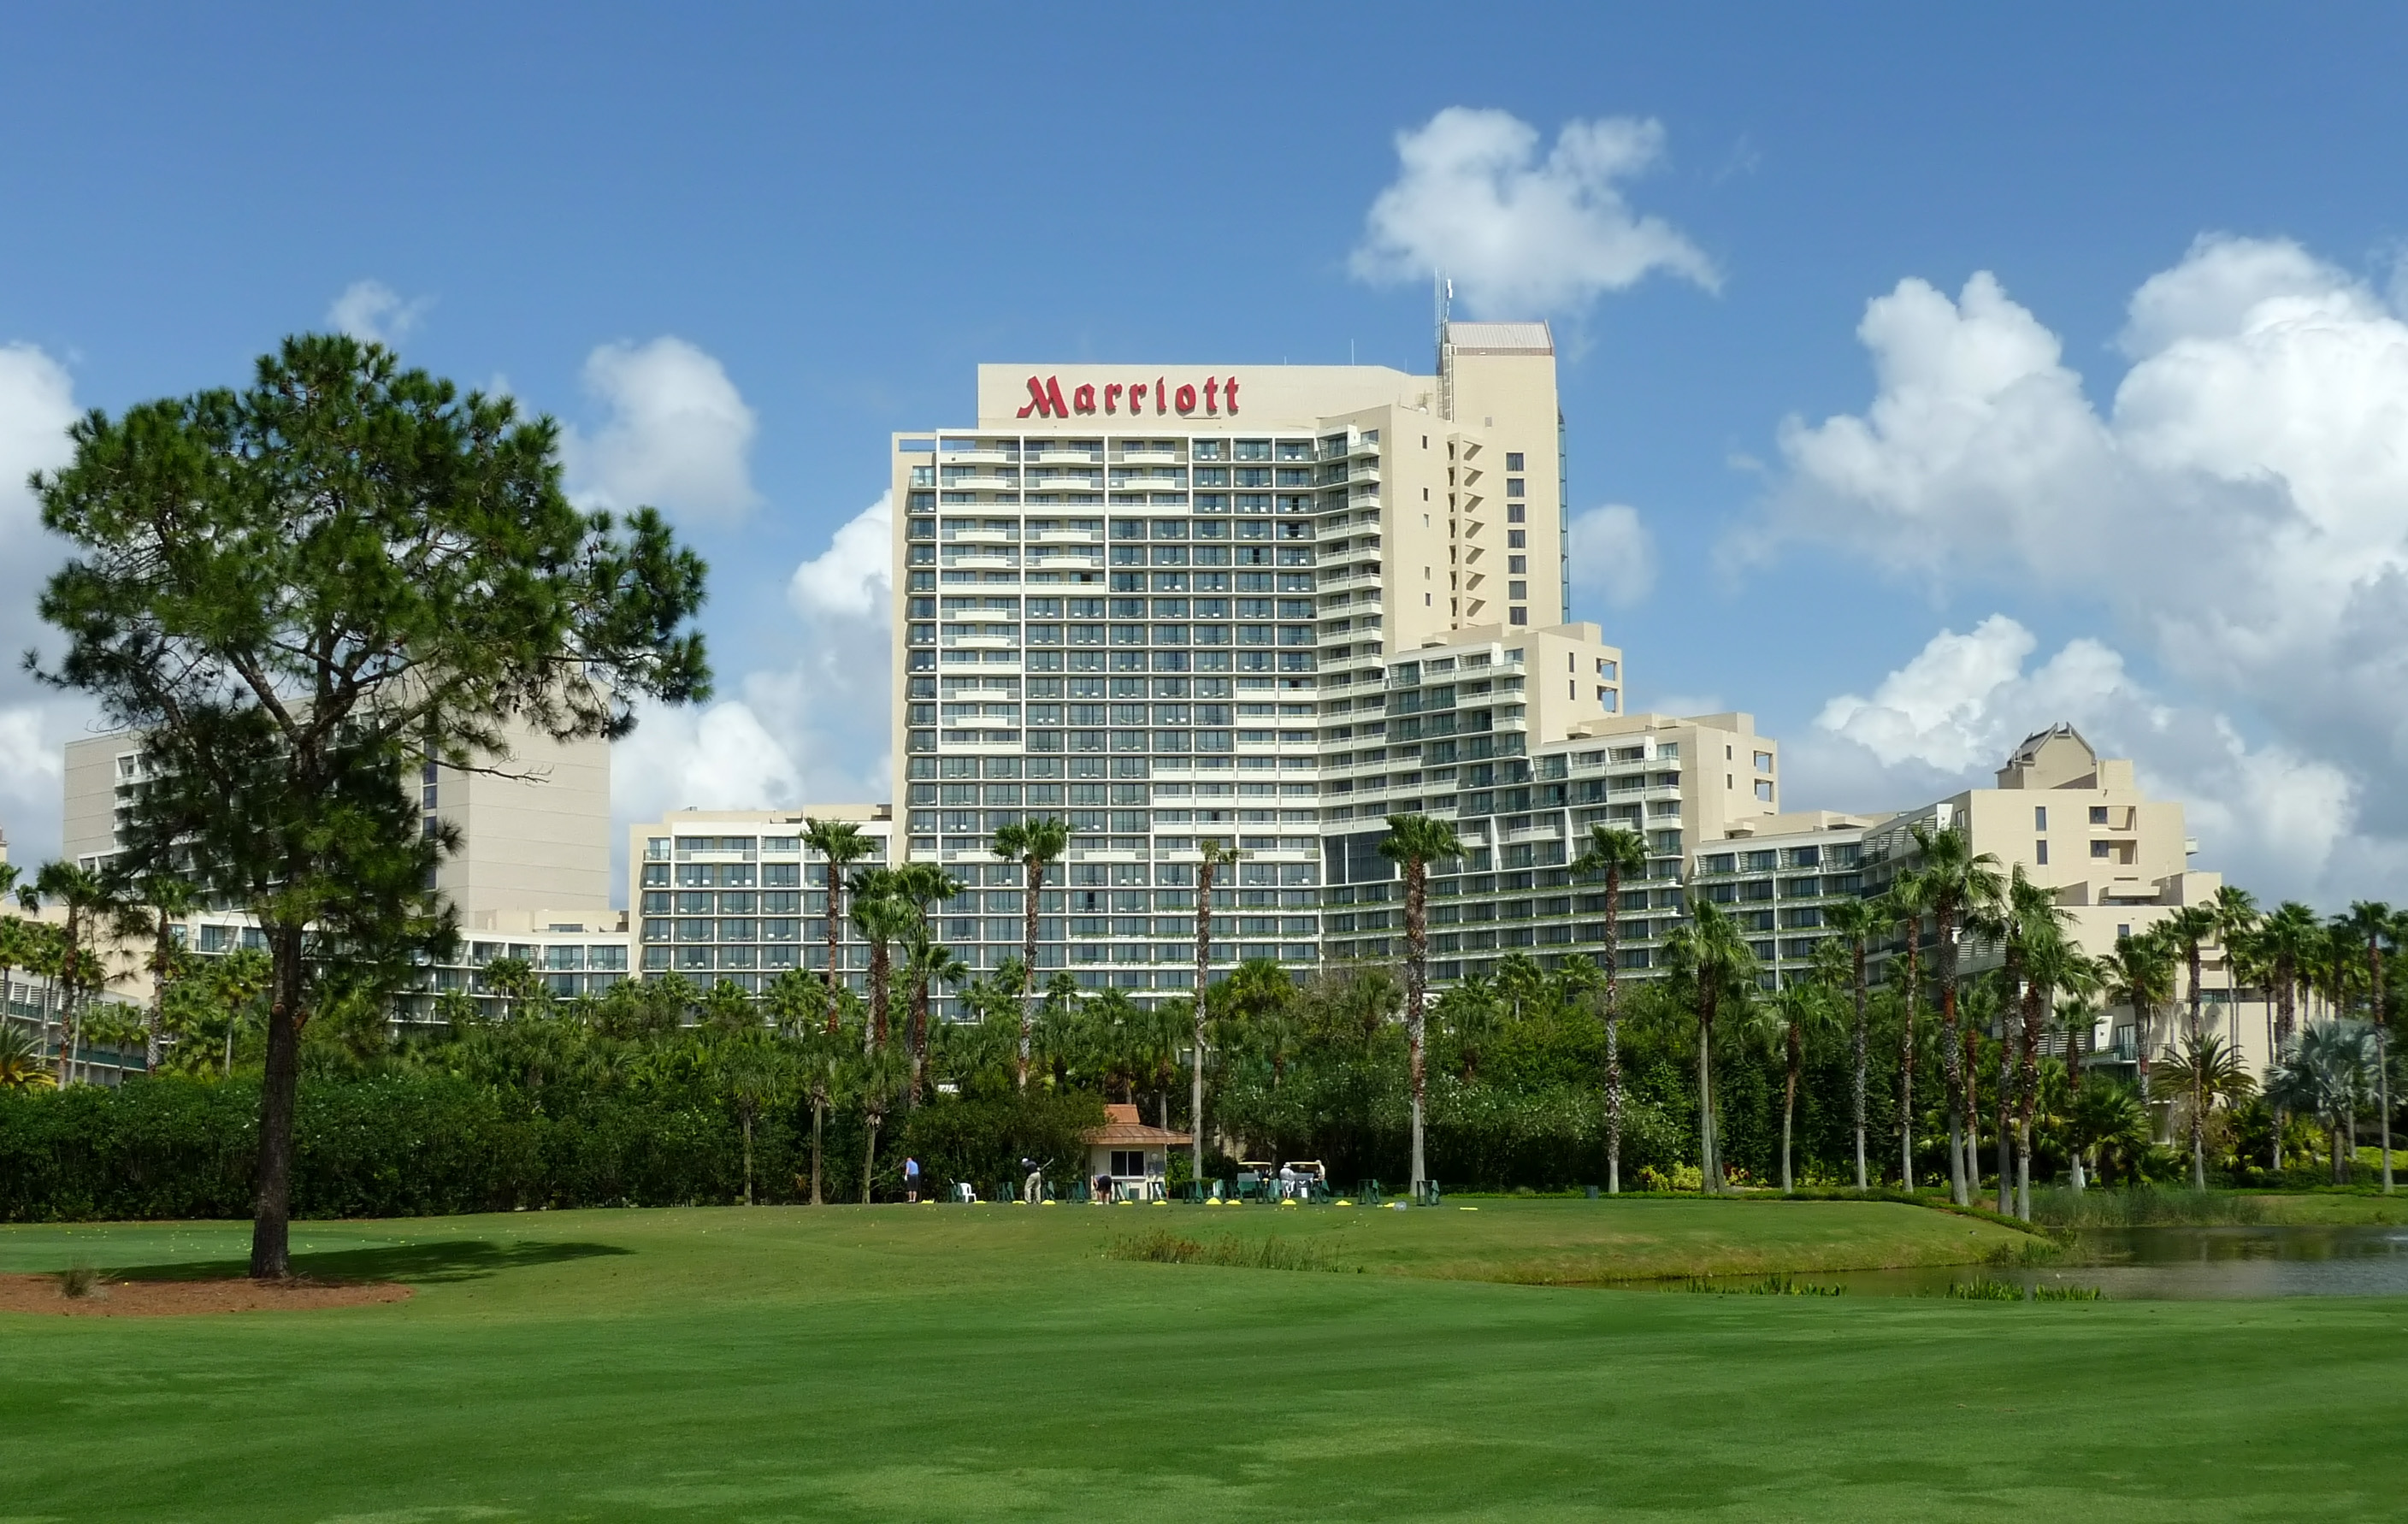 Photo 12 Marriott Orlando World Center